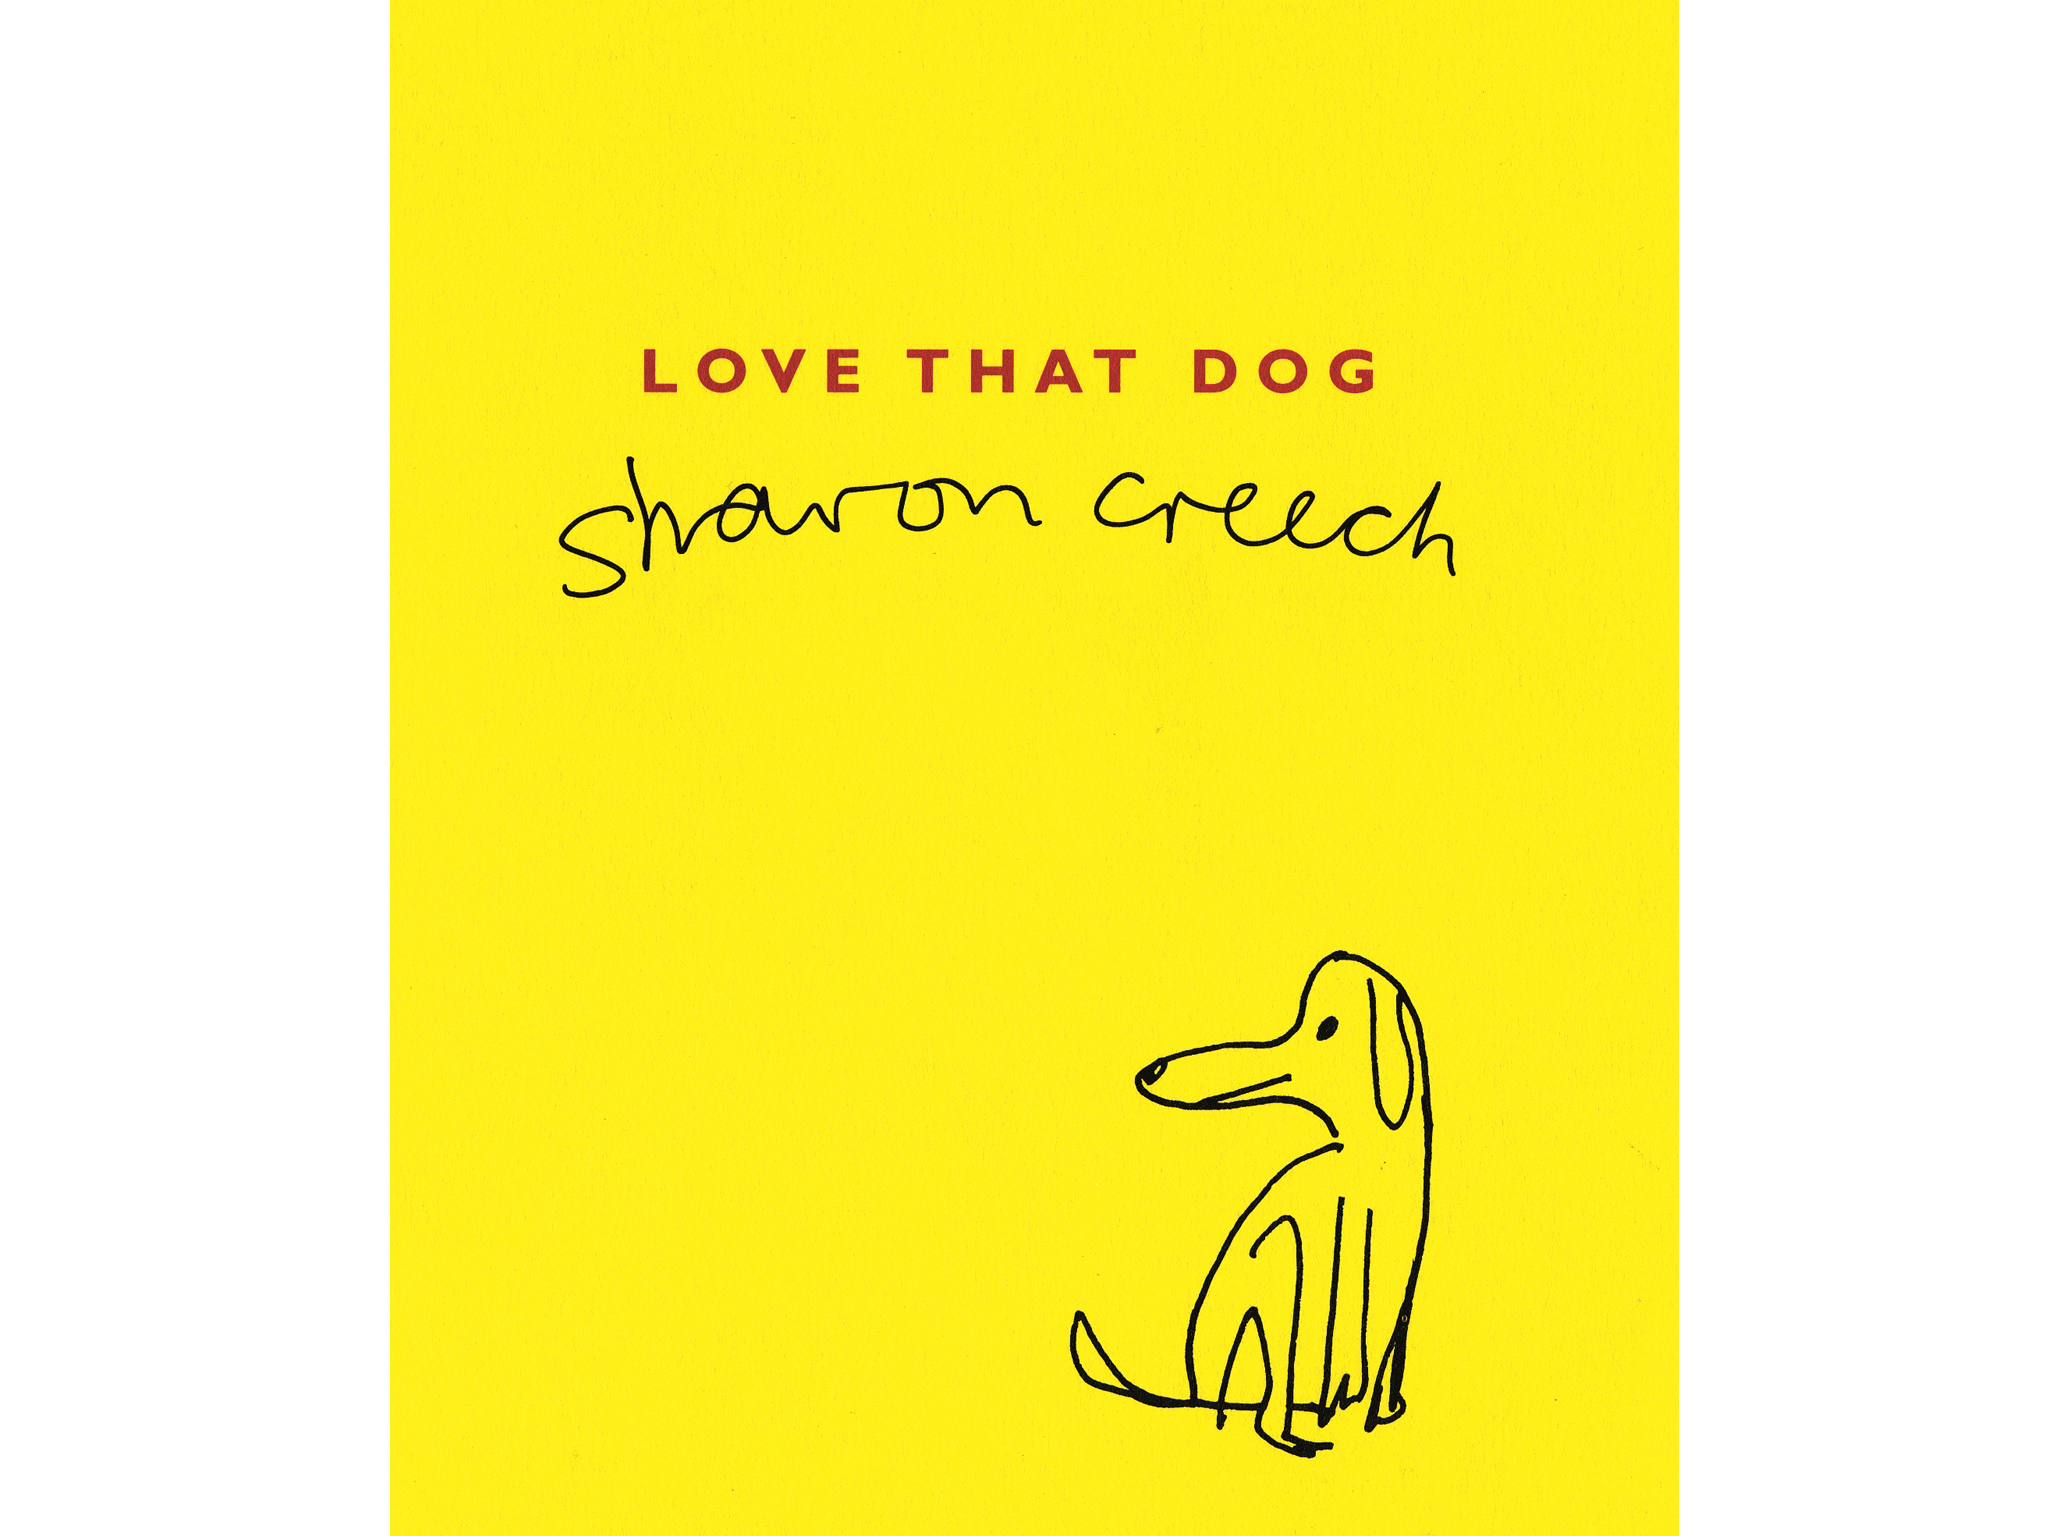 100 best children's books: Love that Dog